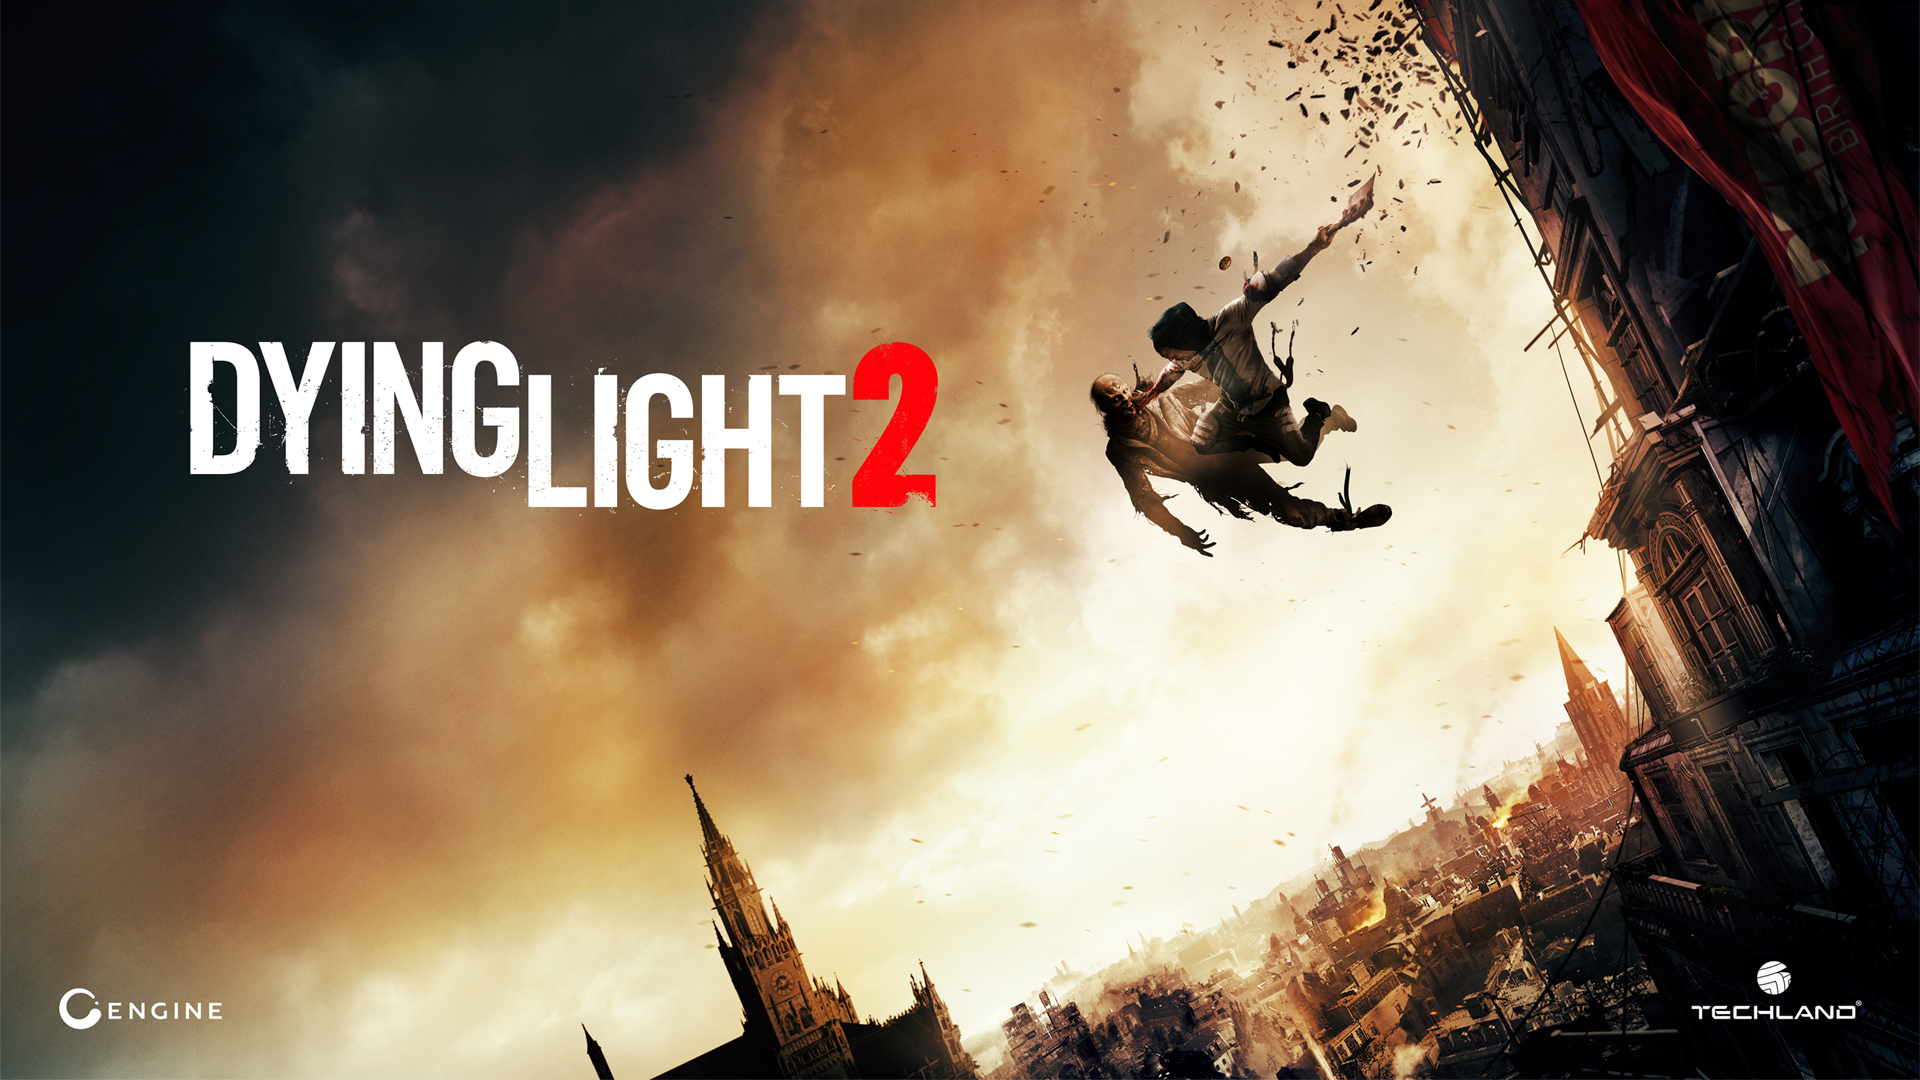 Falling down Wallpaper from Dying Light 2 gamepressurecom 1920x1080